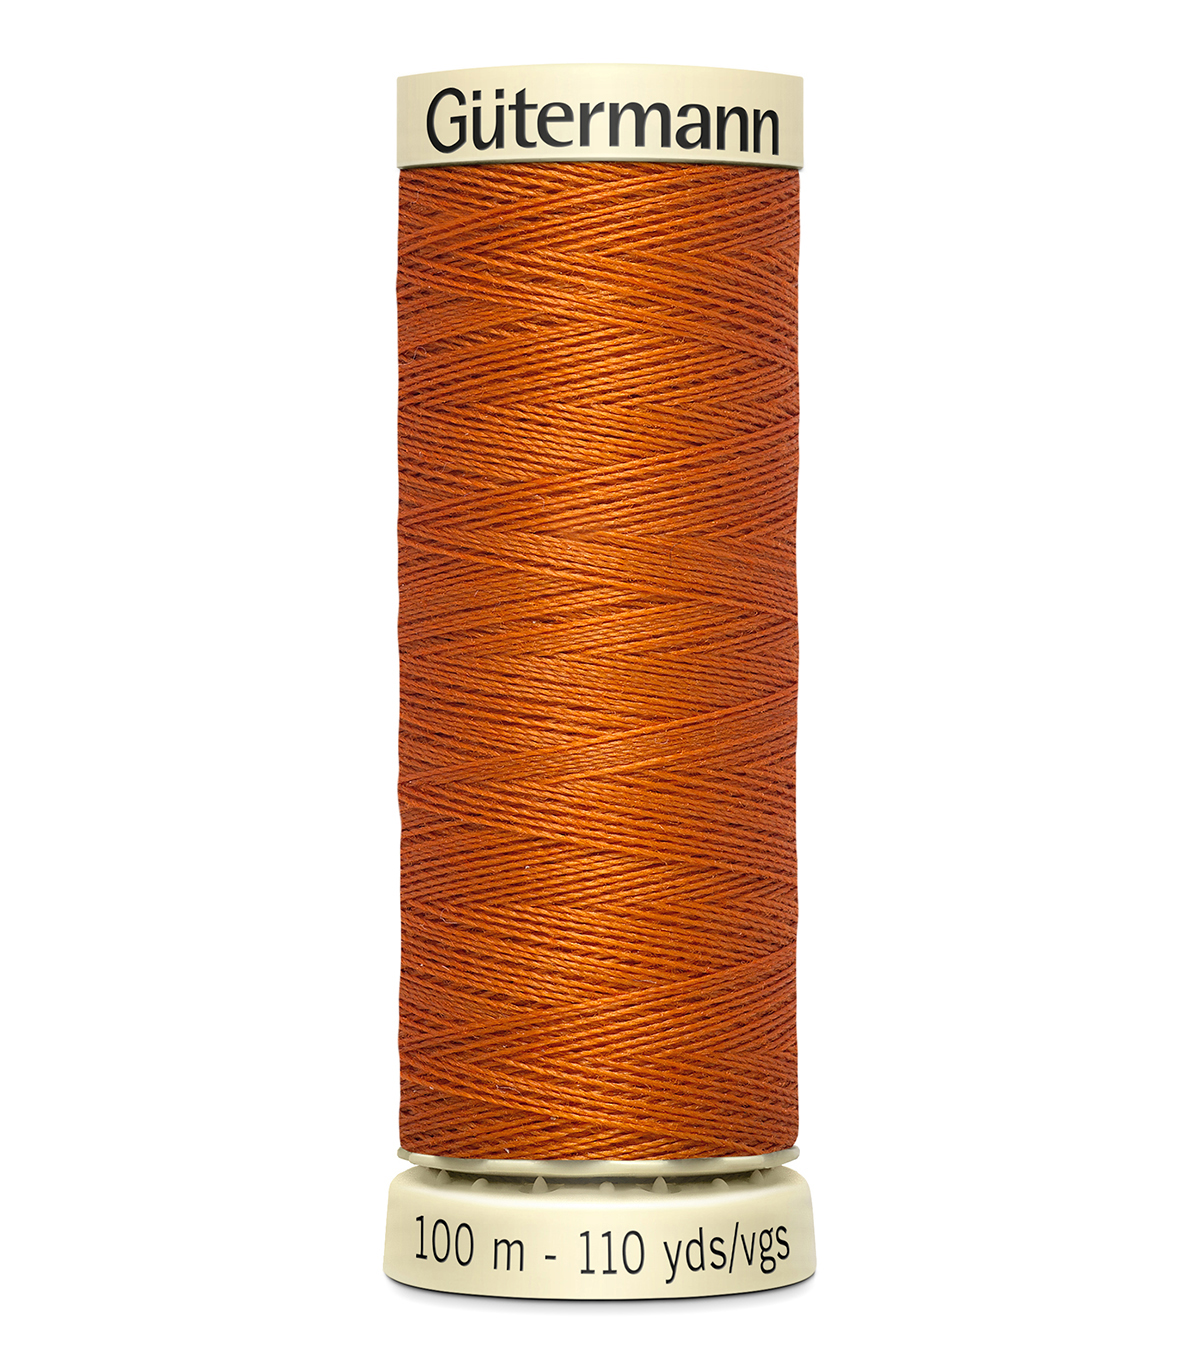 Gutermann Sew All Polyester Thread 110 Yards-Oranges & Yellows , Curry #474